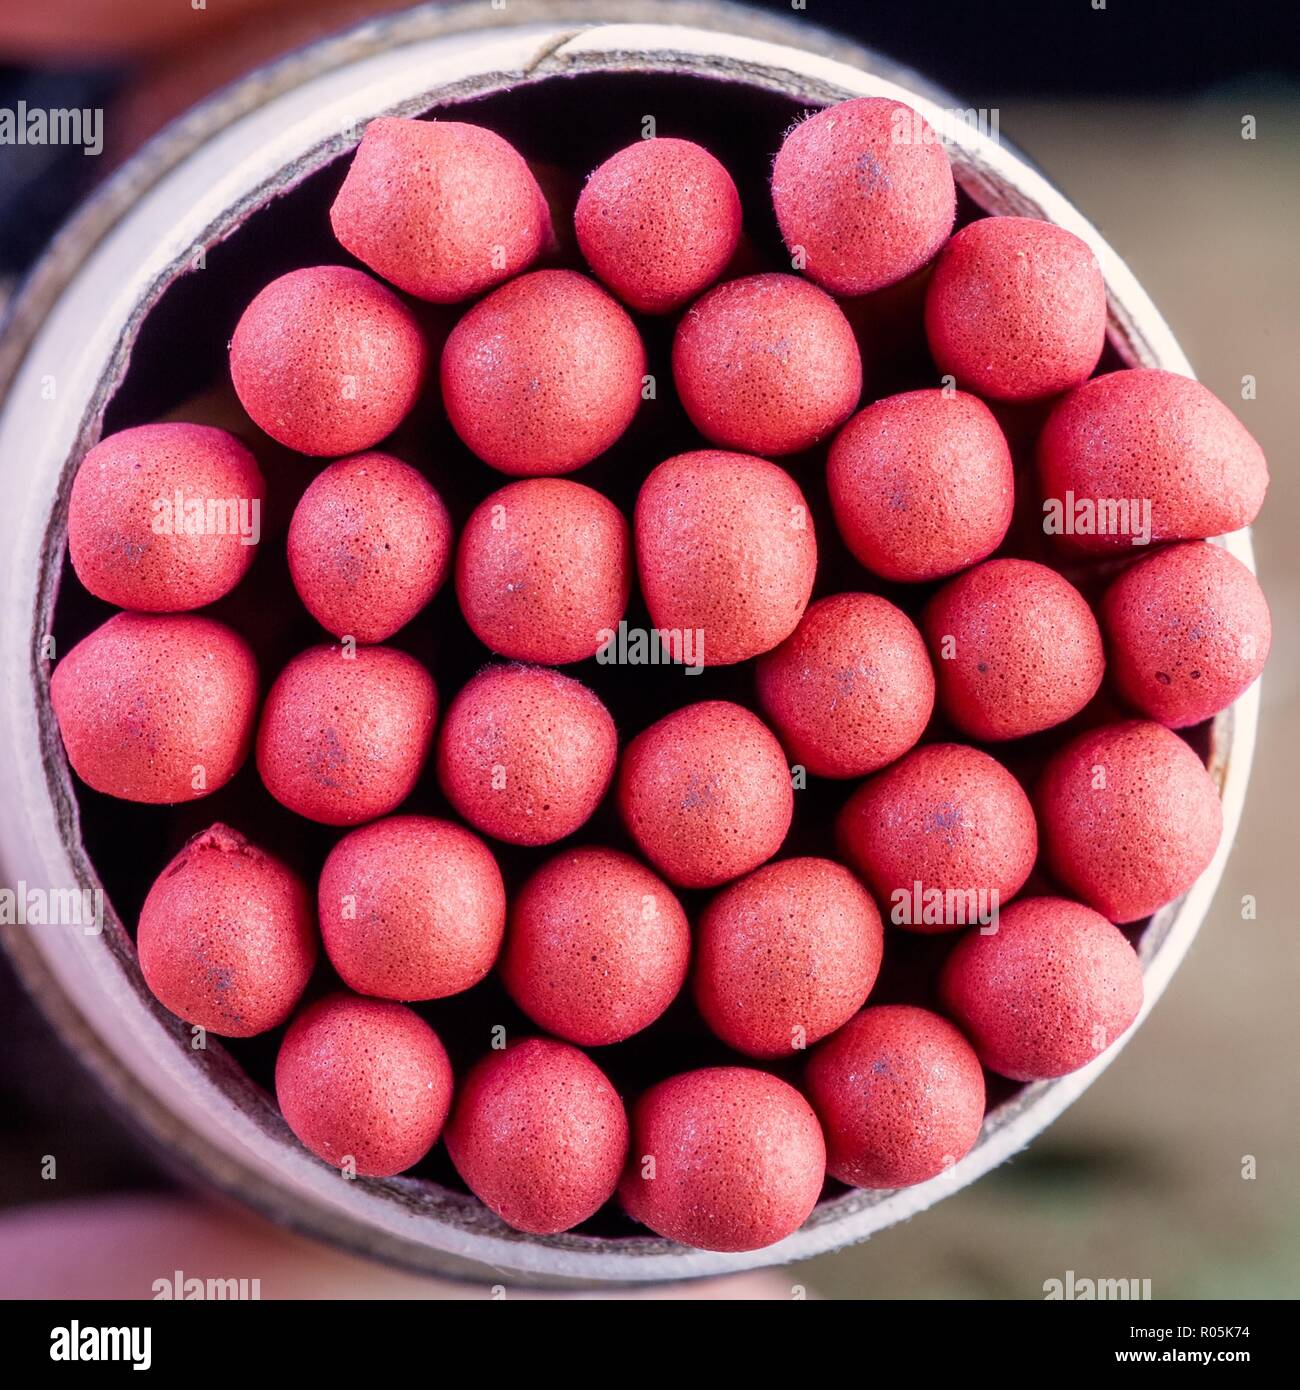 Long stem matches in a round cylindrical box - Stock Image